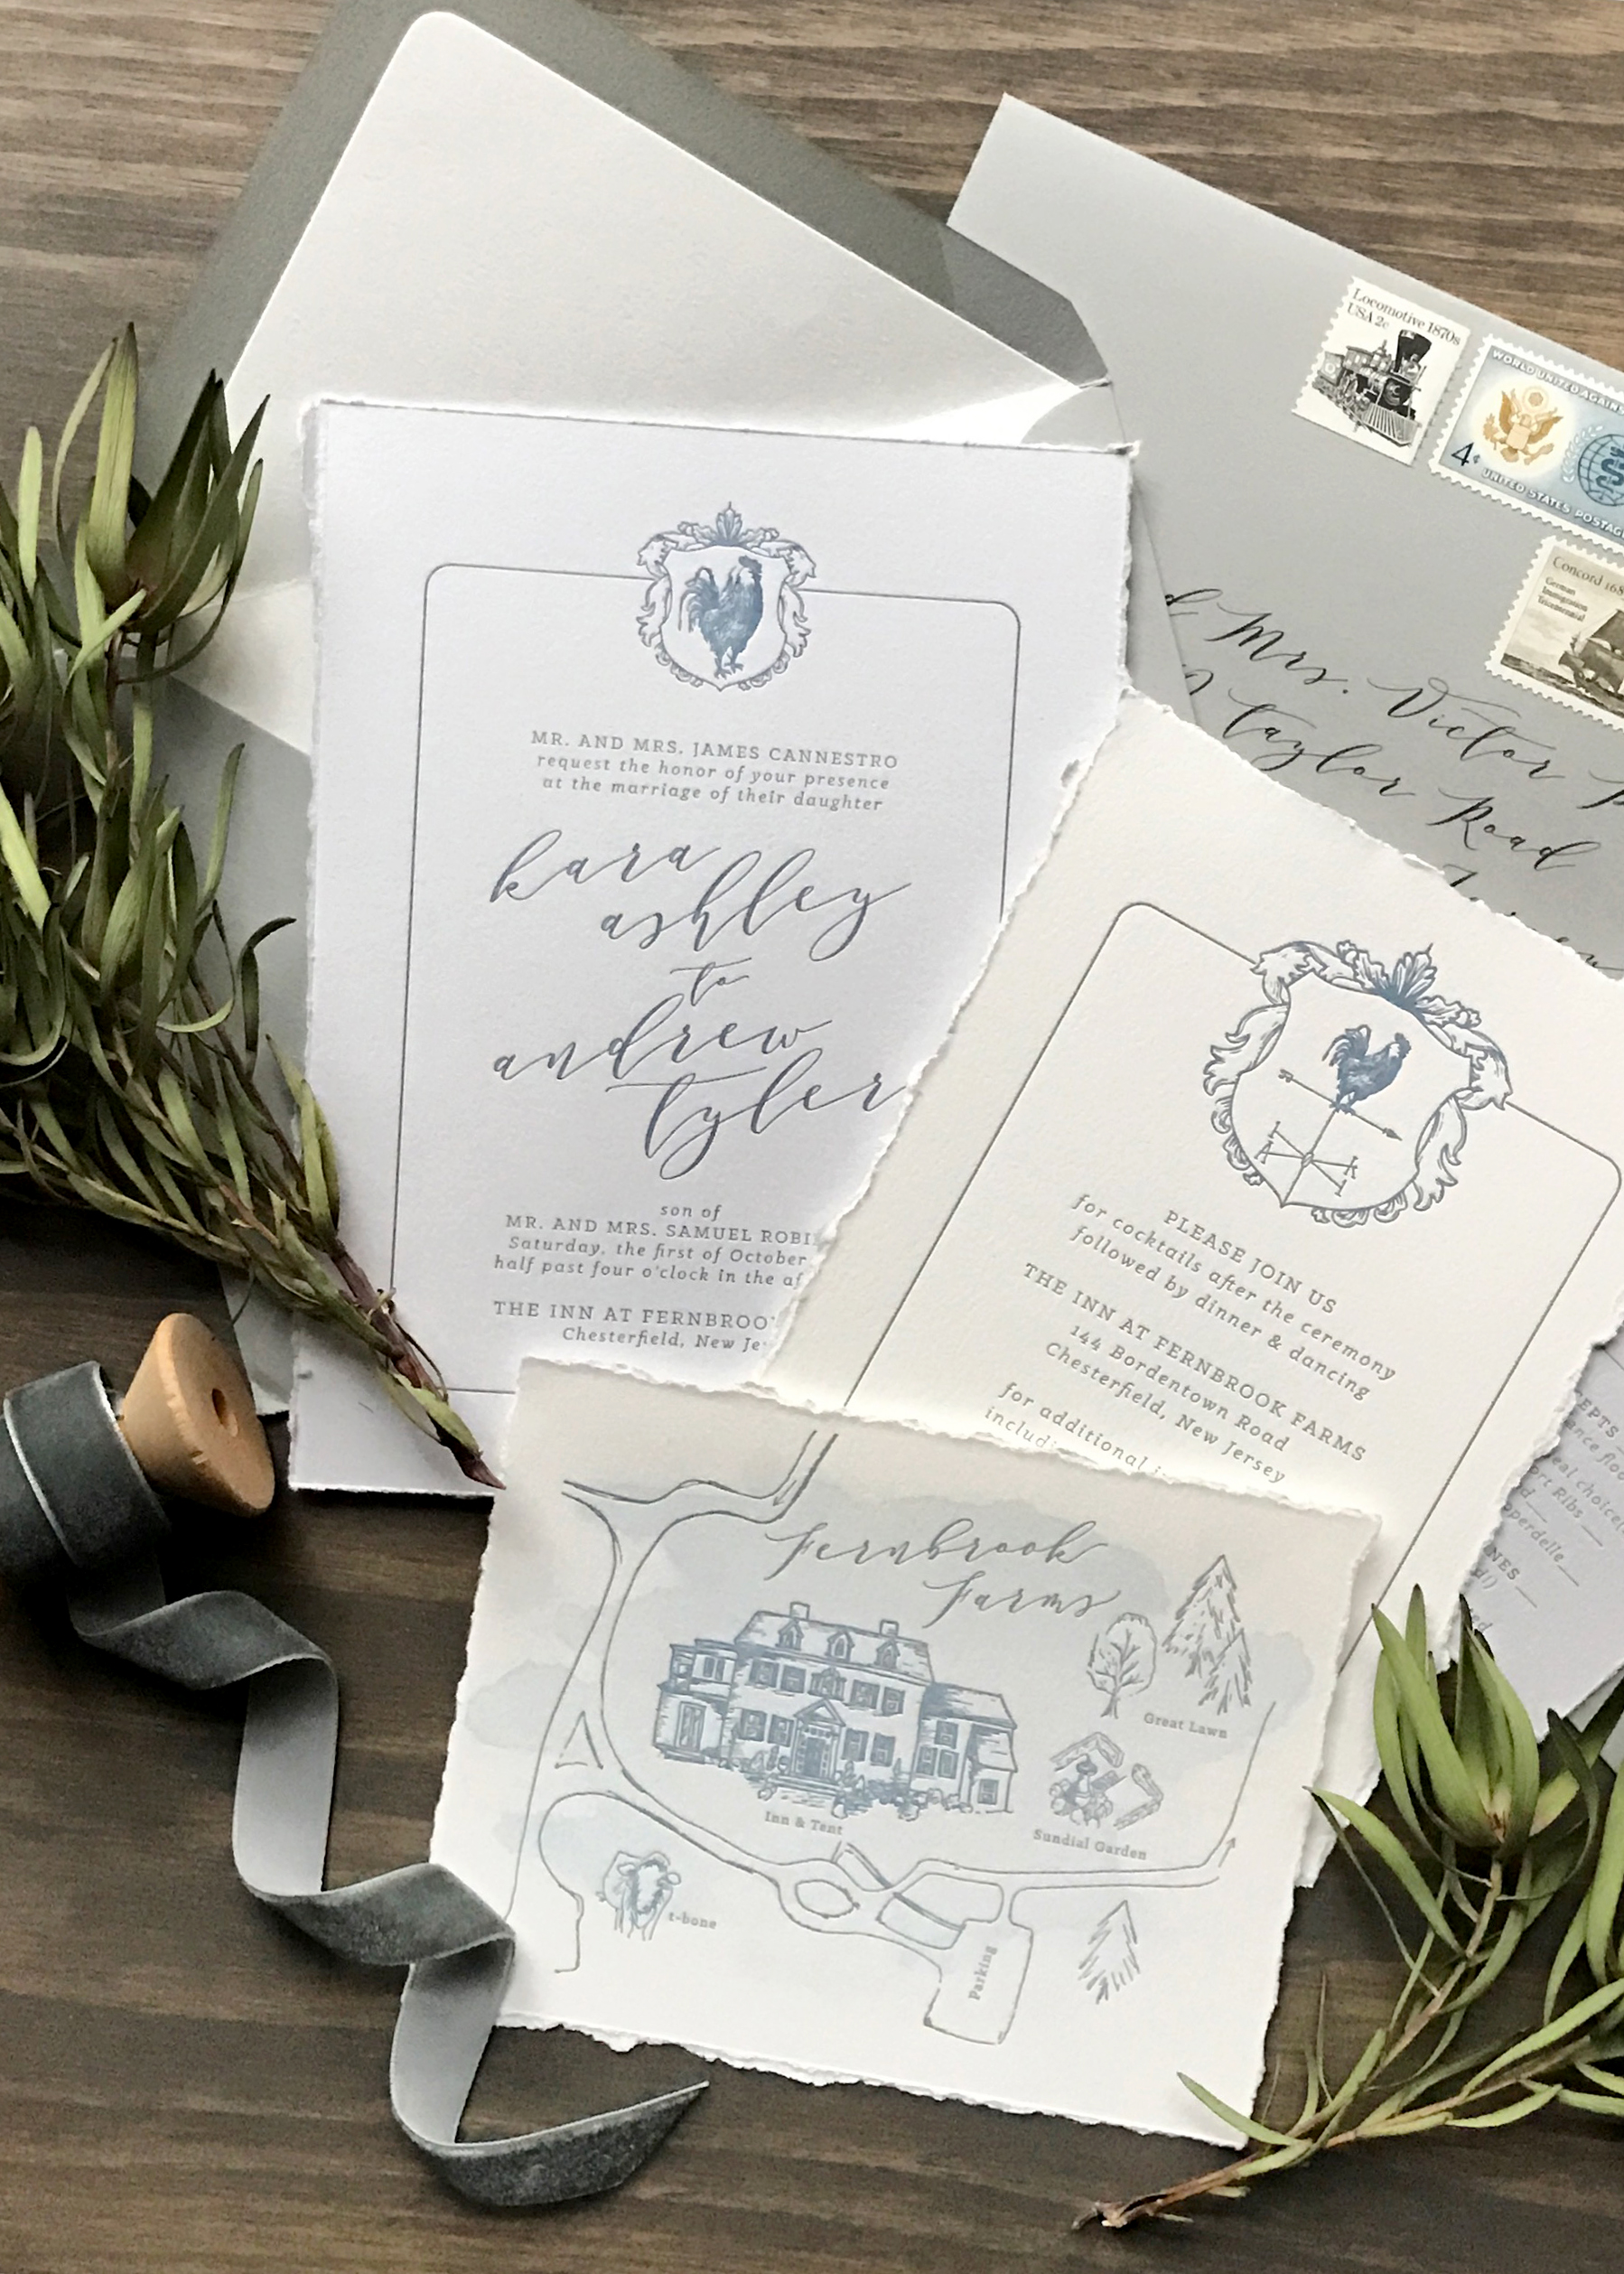 Romantic wedding invitations perfect for a chic garden wedding. Get inspiration and a full venue list on the blog!